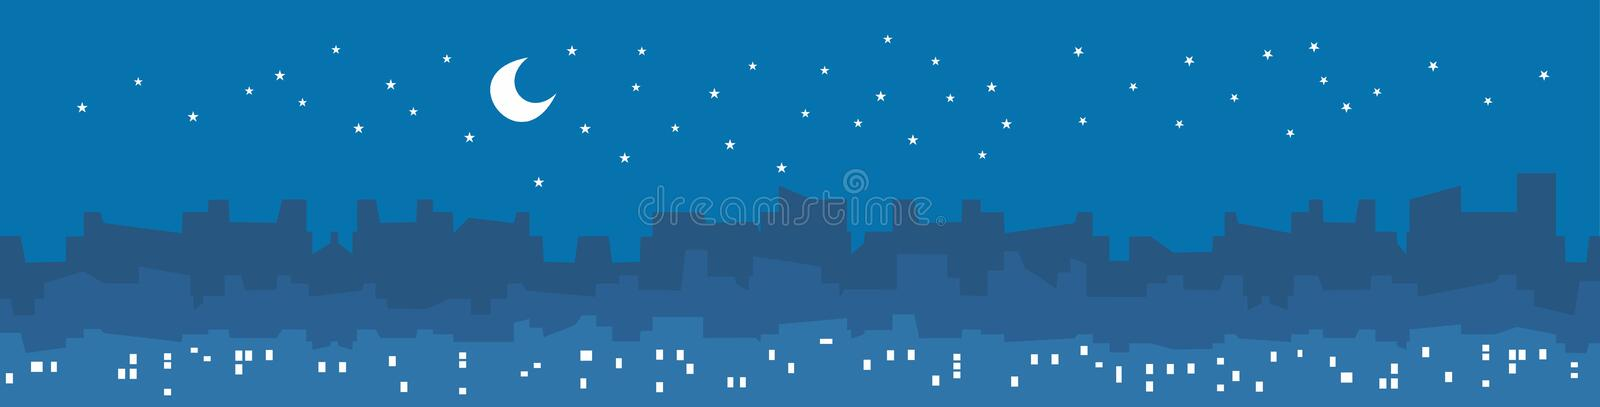 City by night vector illustration with skyscrapers, lights in windows, stars and moon. City by night vector illustration with skyscrapers and buildings stock illustration